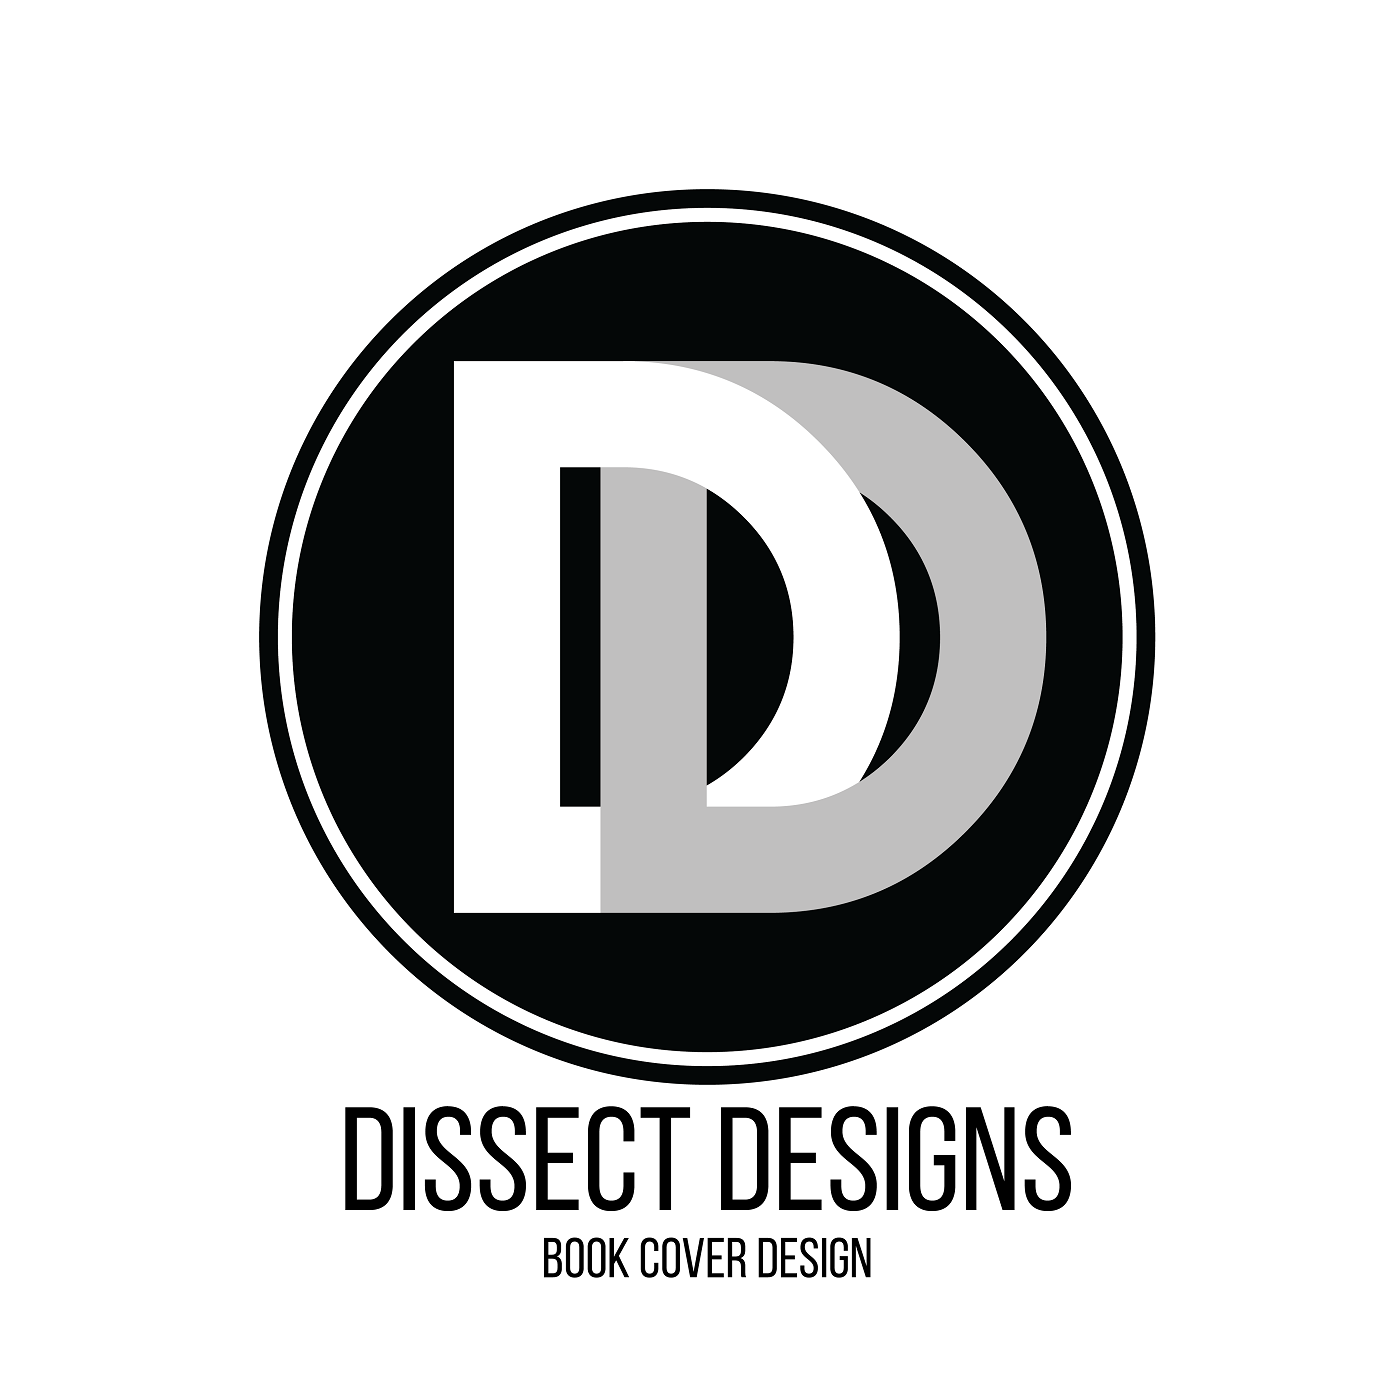 Dissect Designs